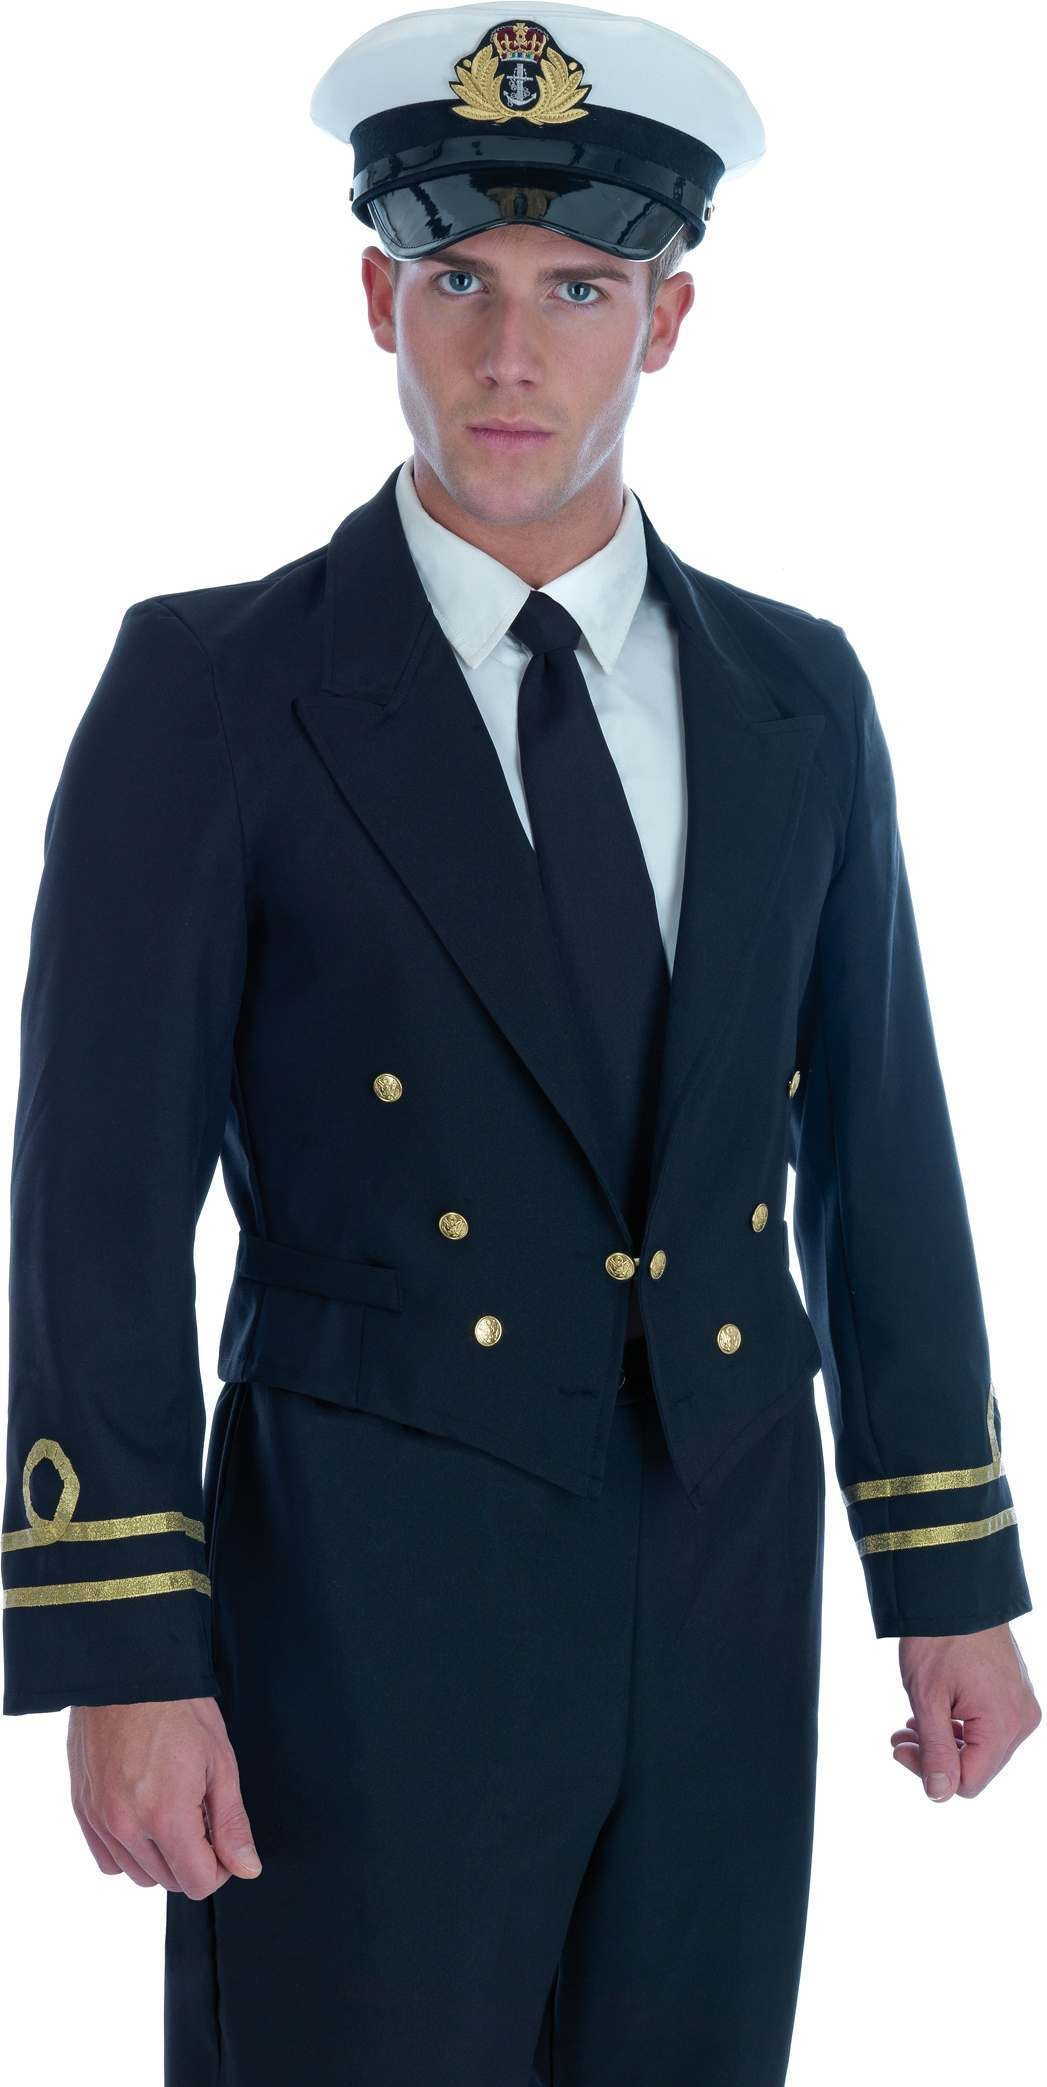 Dress Blue Navy Male Costume Fancy Dress Costume Mens (Army)